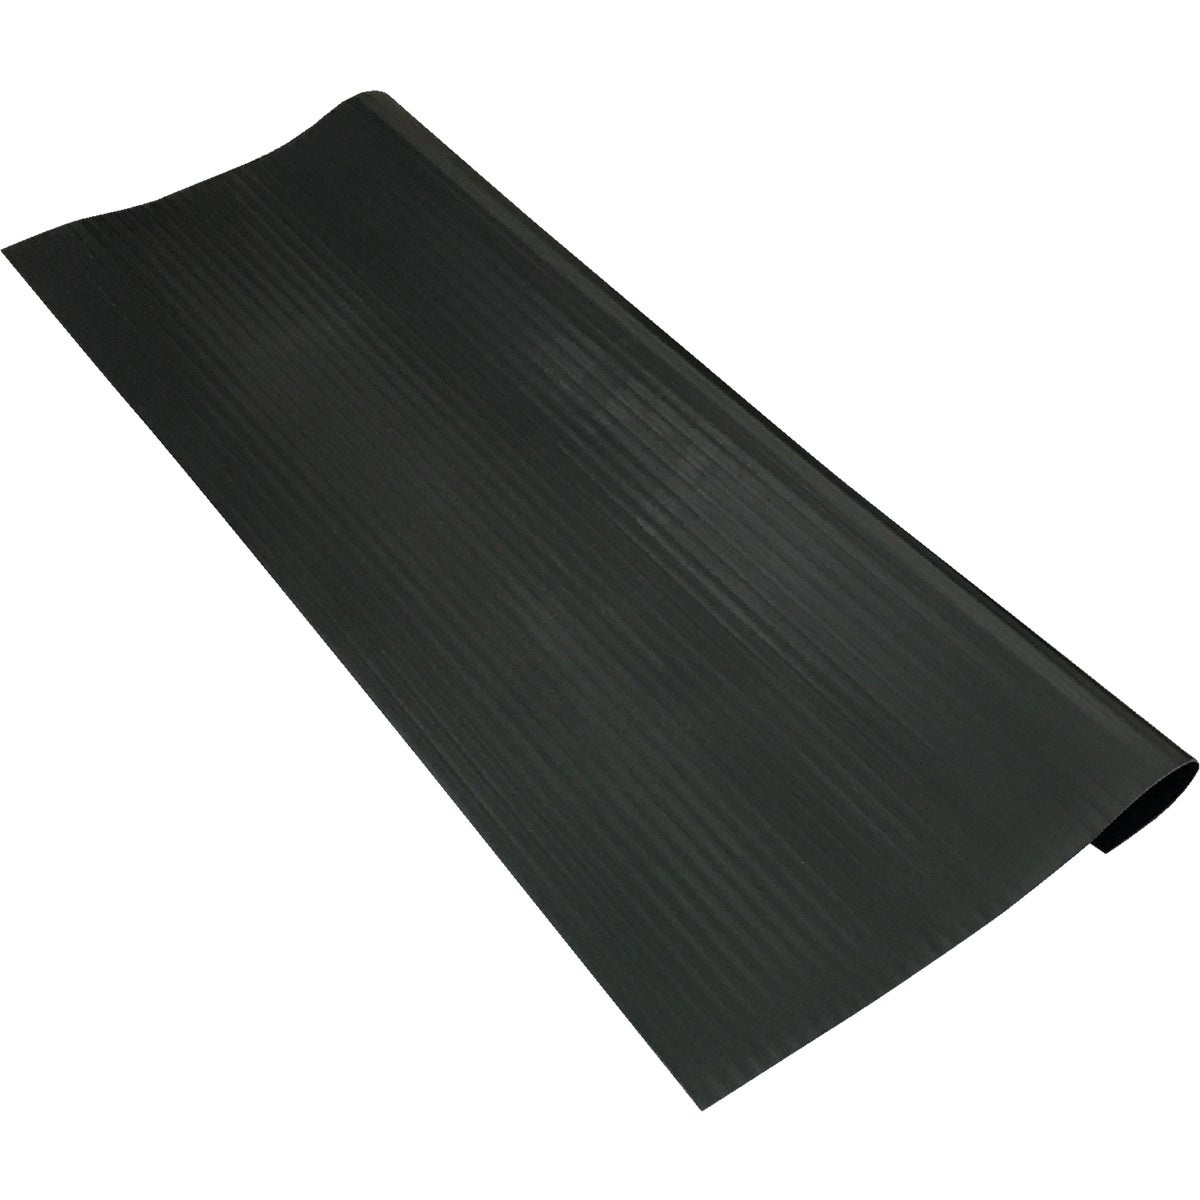 "24"" BLACK STAIR TREAD"